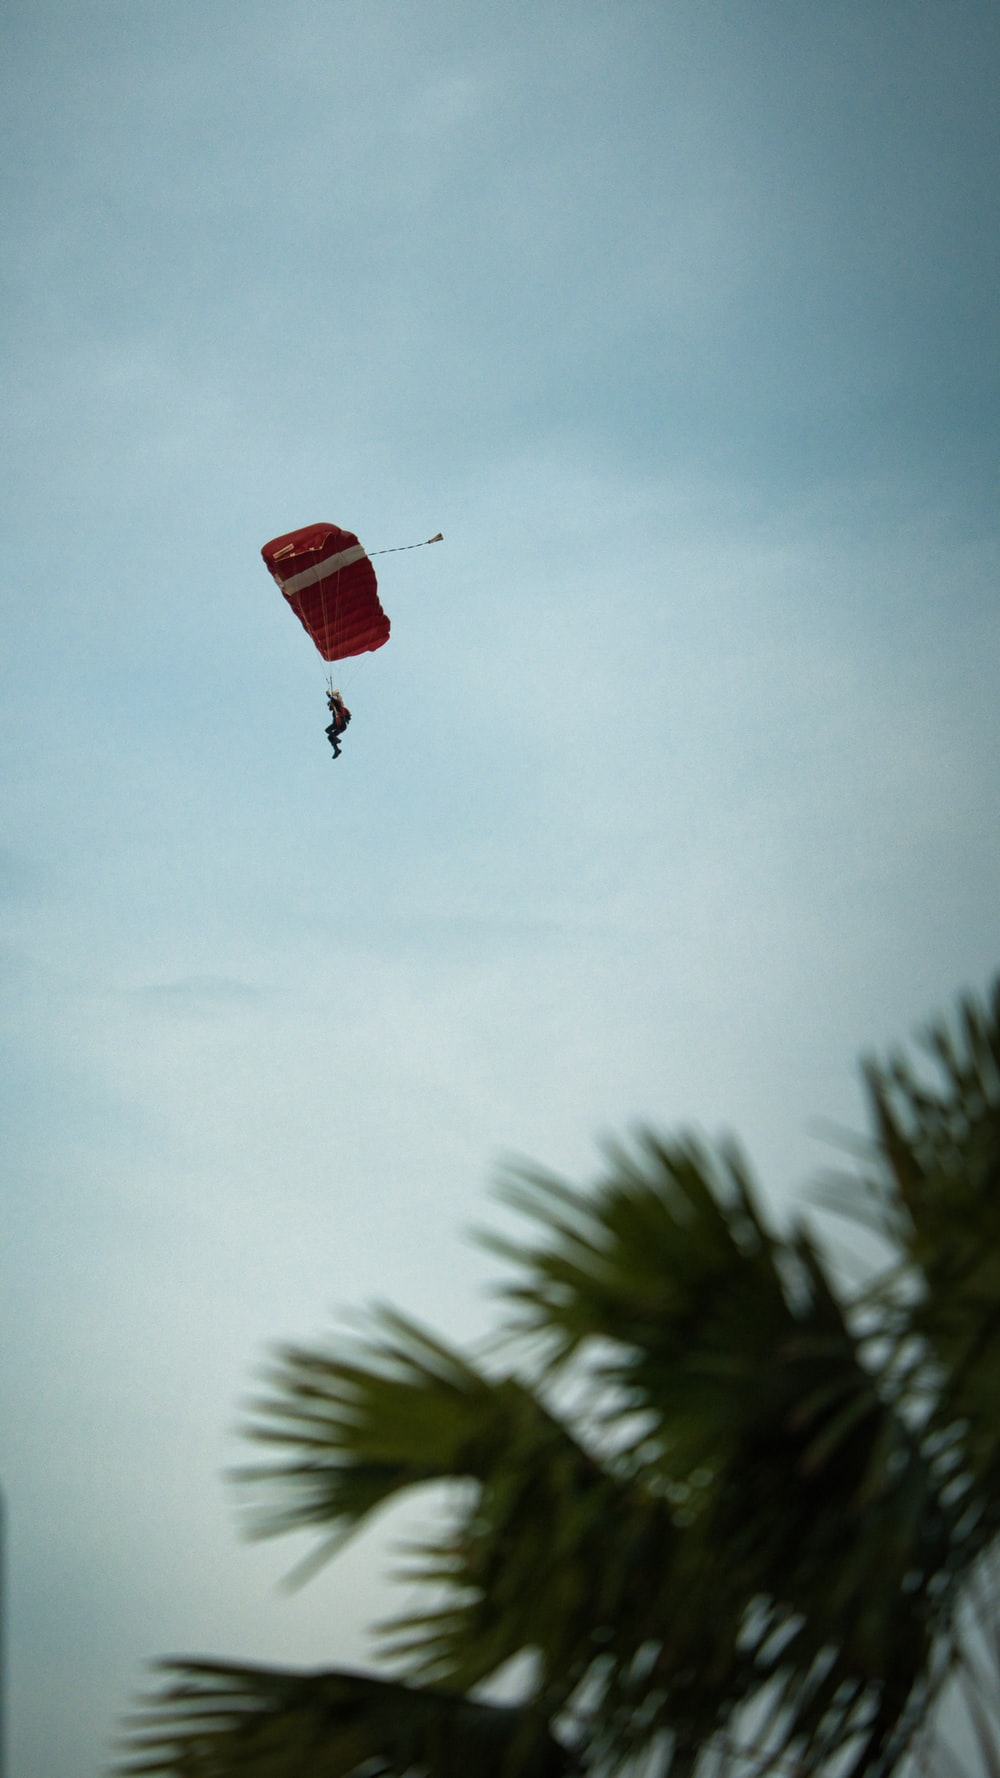 person in red parachute under white sky during daytime